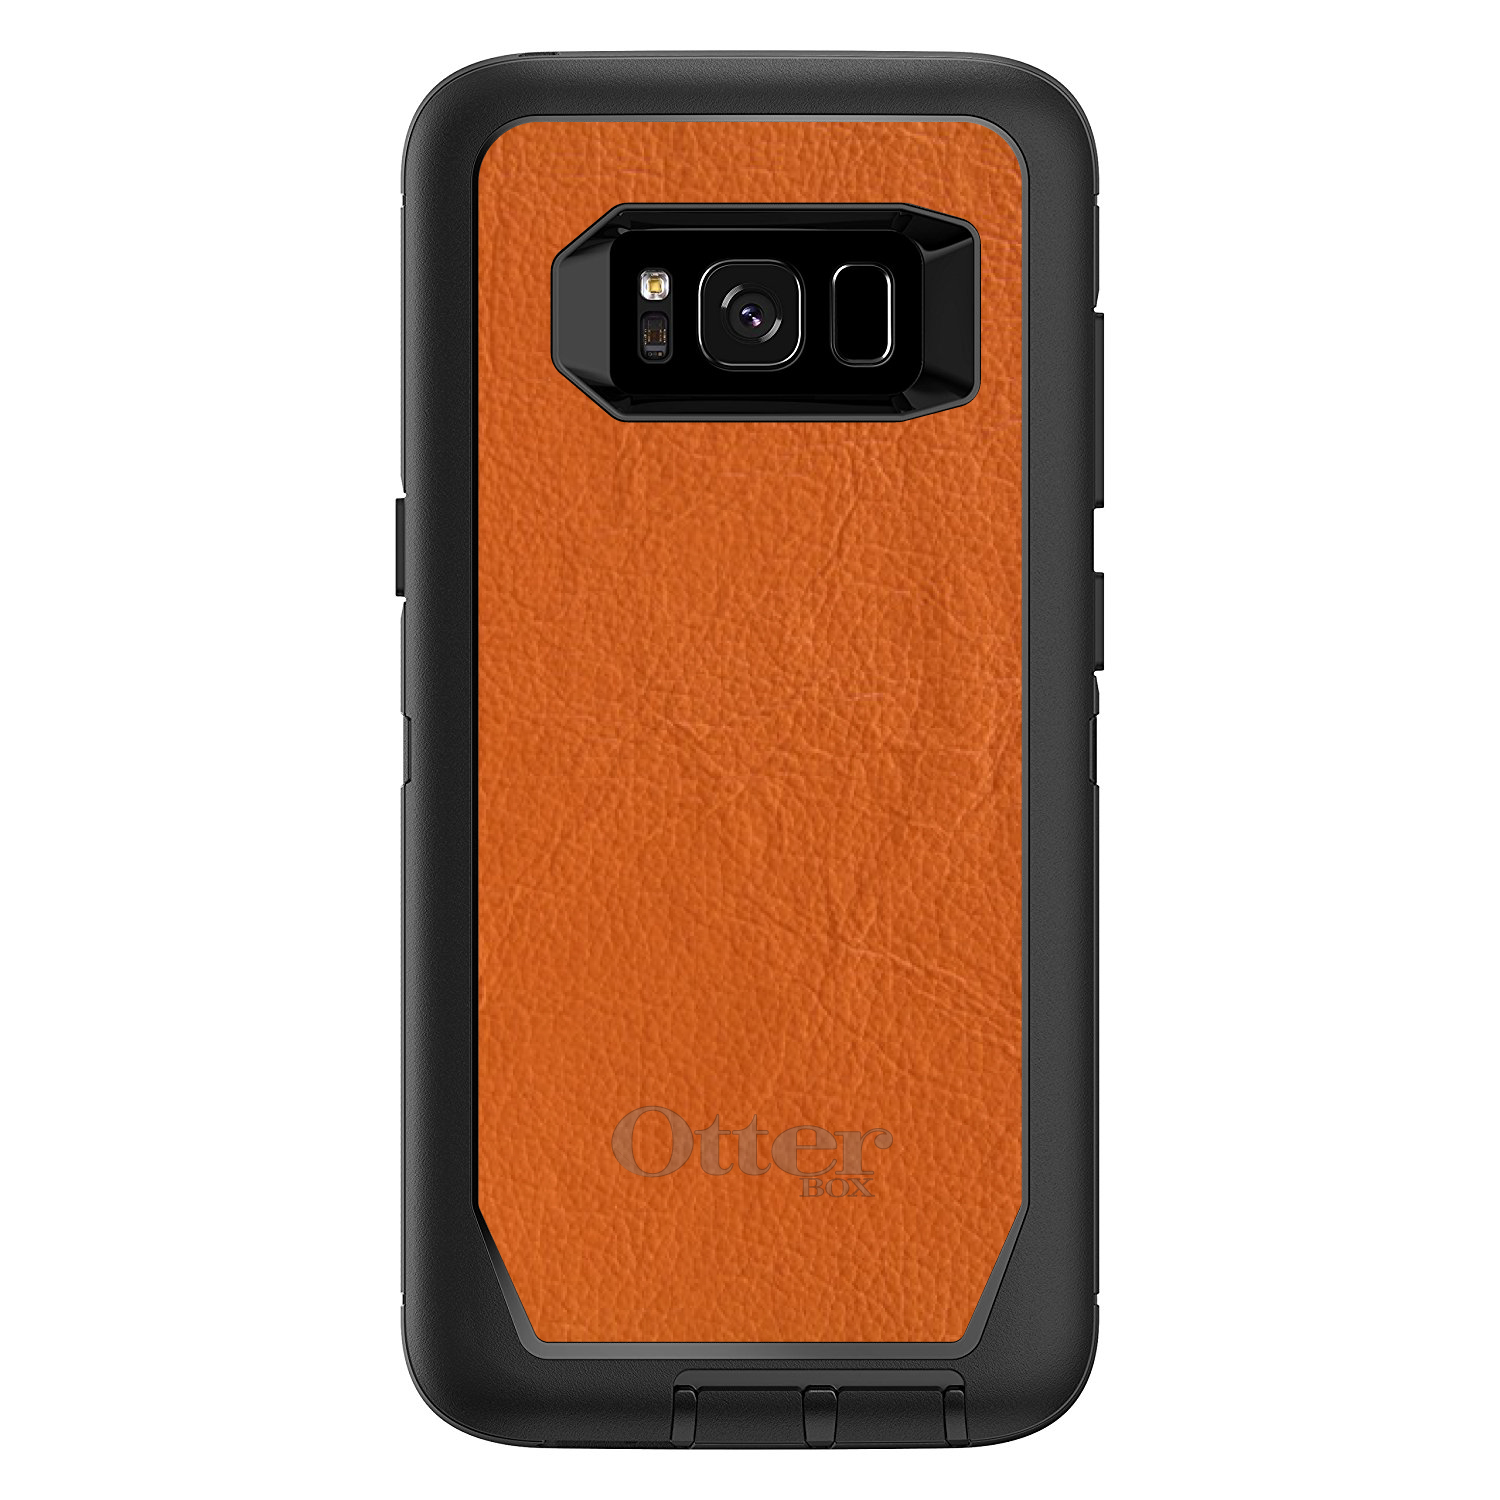 "DistinctInk™ Custom Black OtterBox Defender Series Case for Samsung Galaxy S8 (5.8"" Screen) - Orange Leather Print Design"